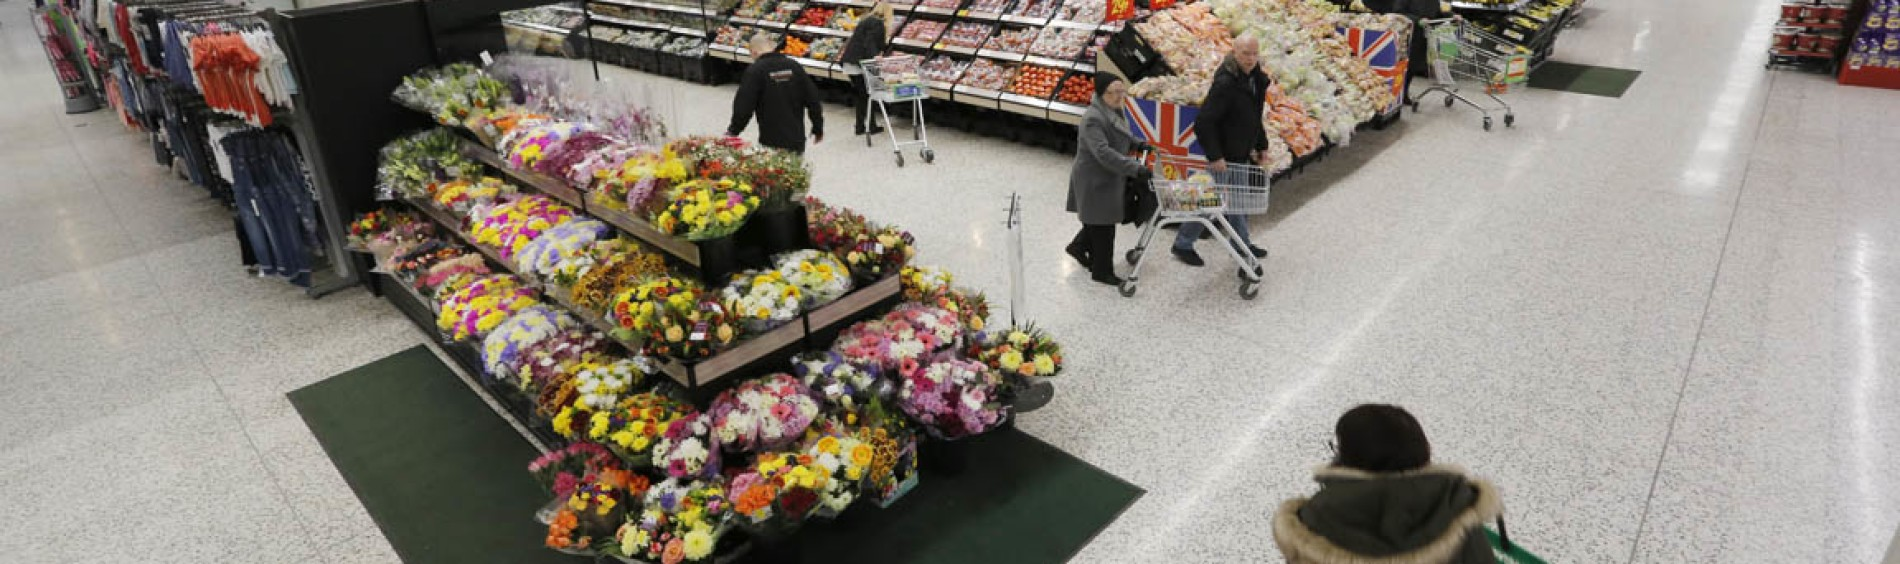 Customers their carts around fresh produce and flowers